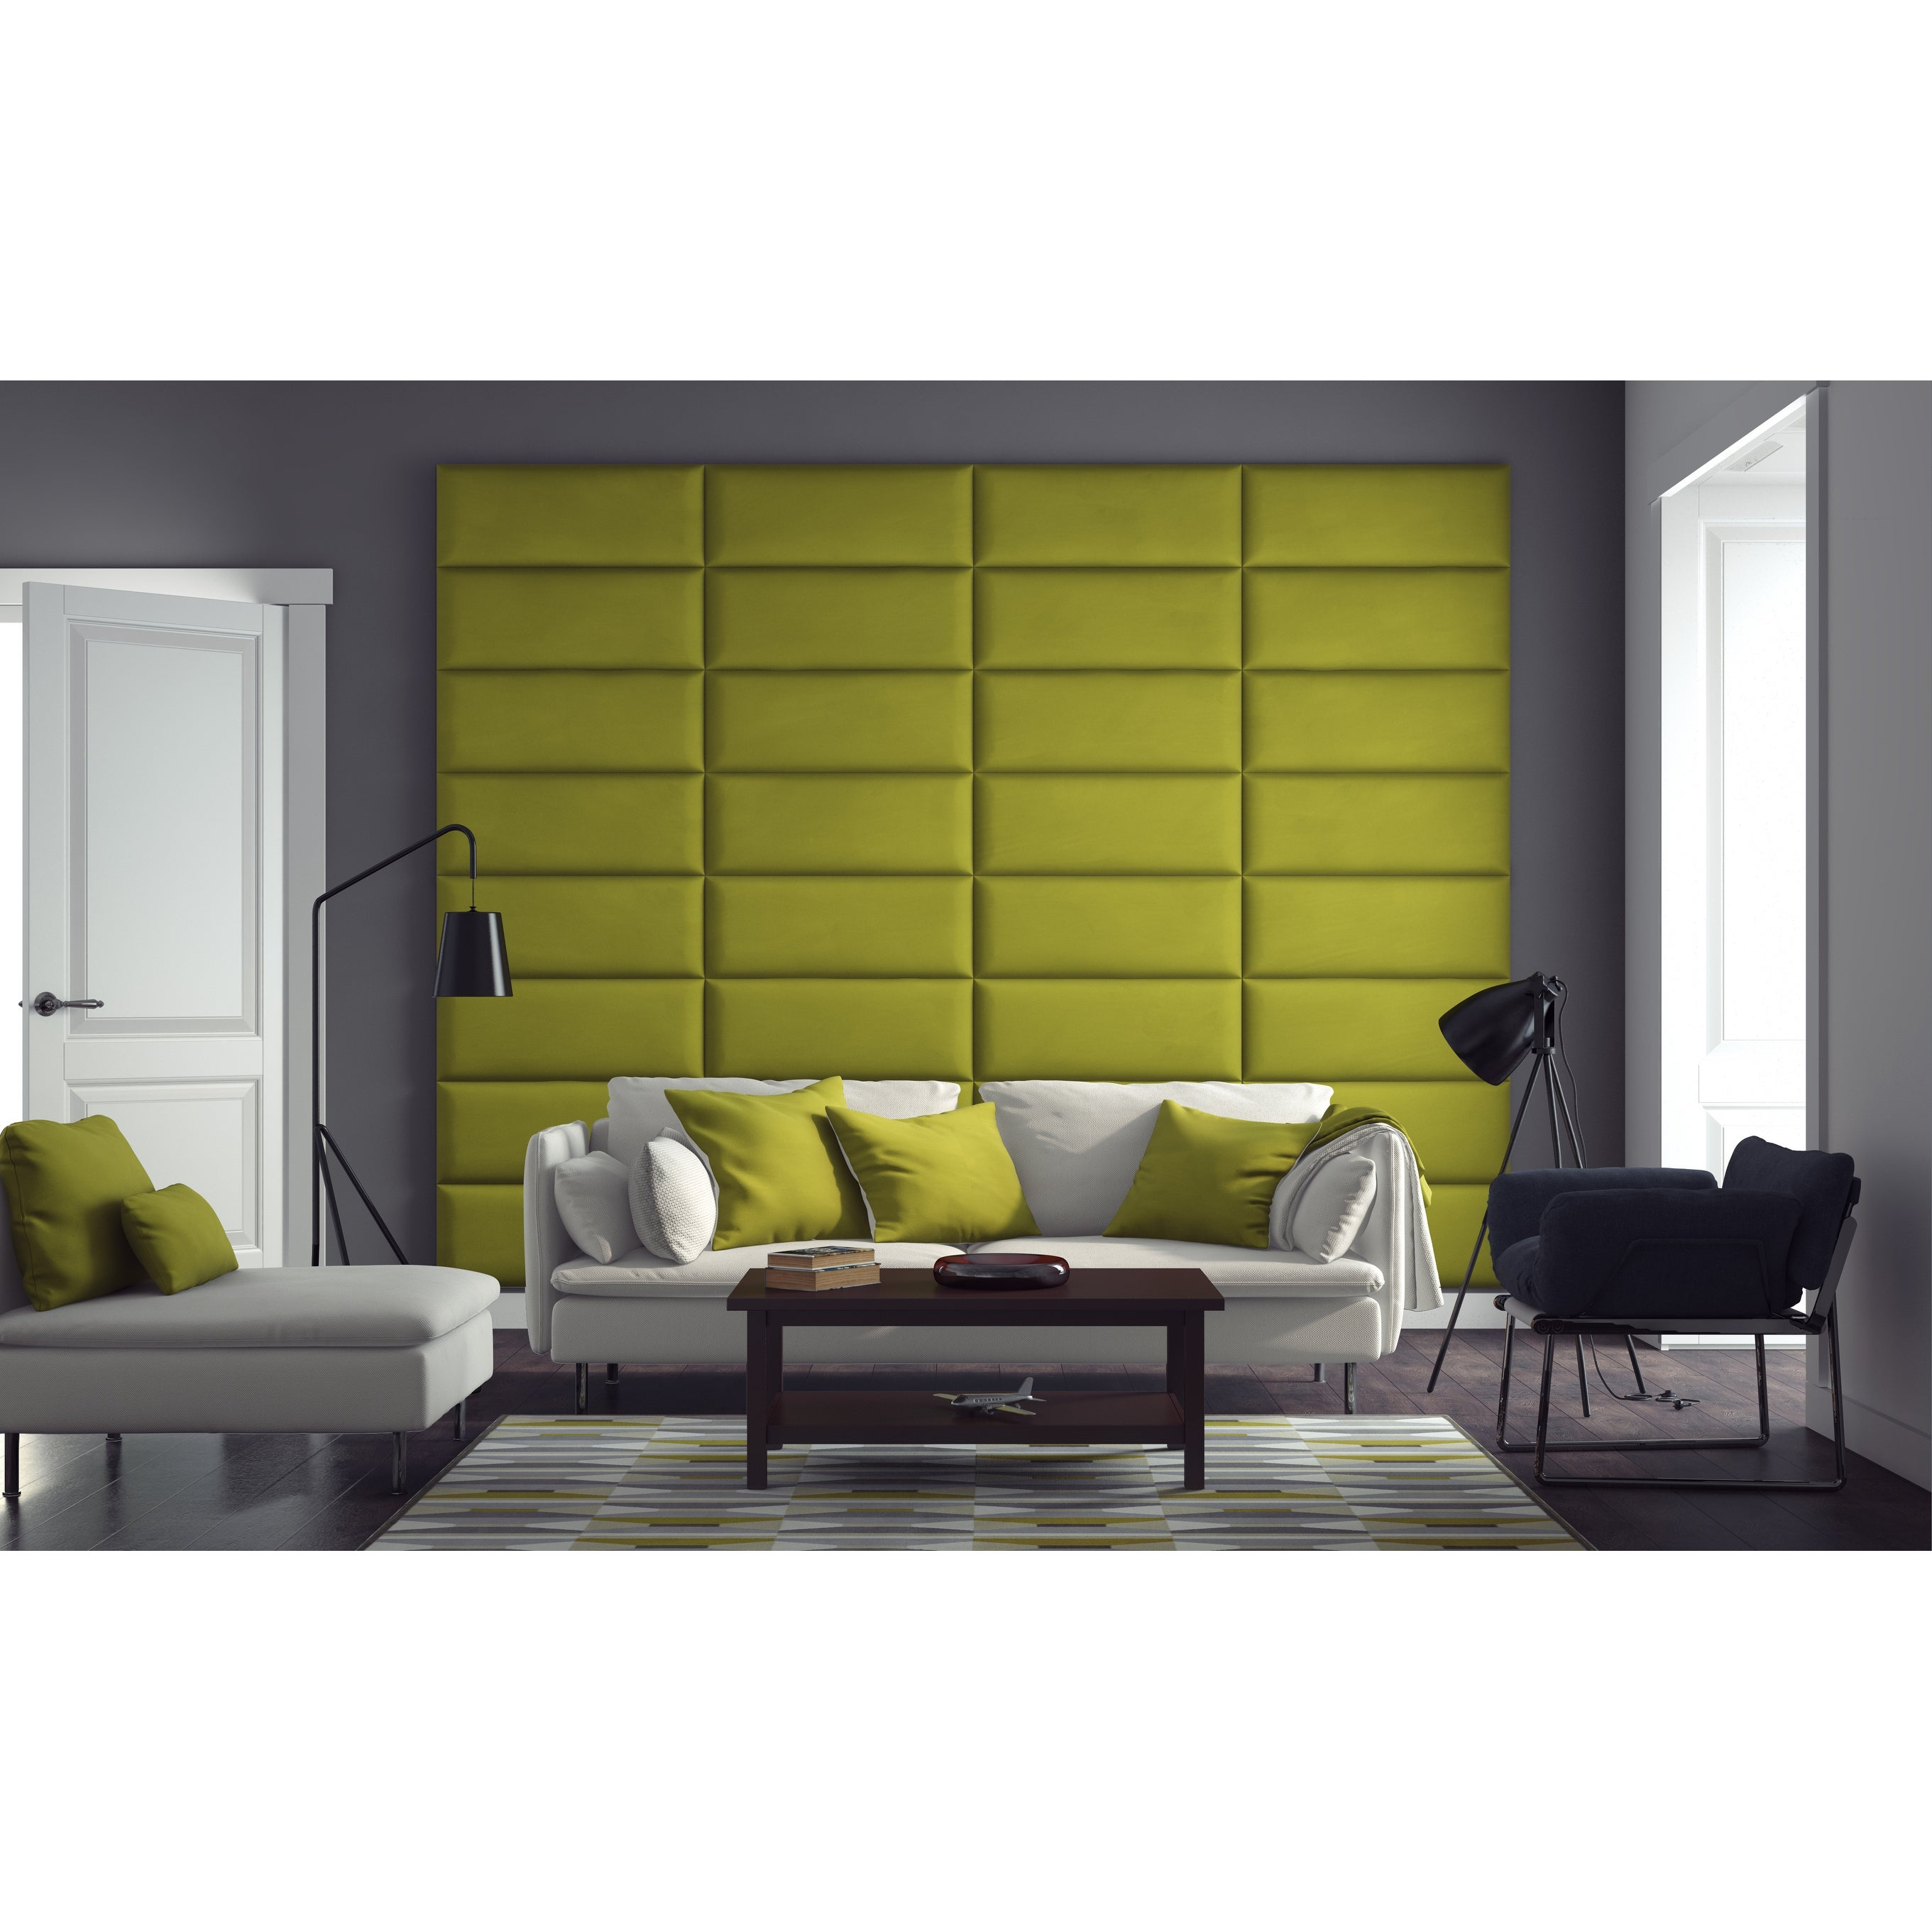 Shop Vant Upholstered Wall Panels (Headboards) Sets of 4 - Micro ...